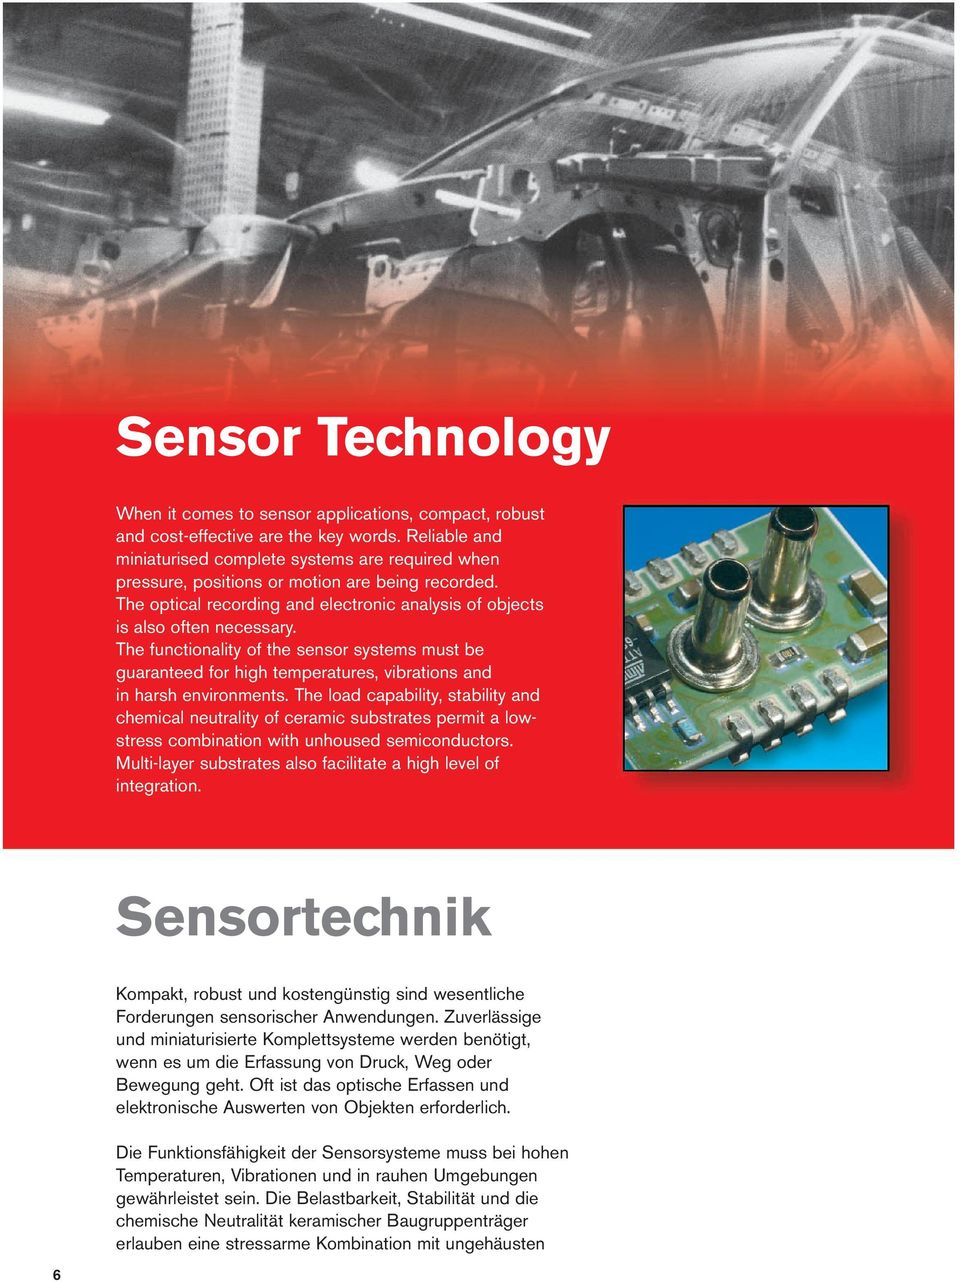 The functionality of the sensor systems must be guaranteed for high temperatures, vibrations and in harsh environments.